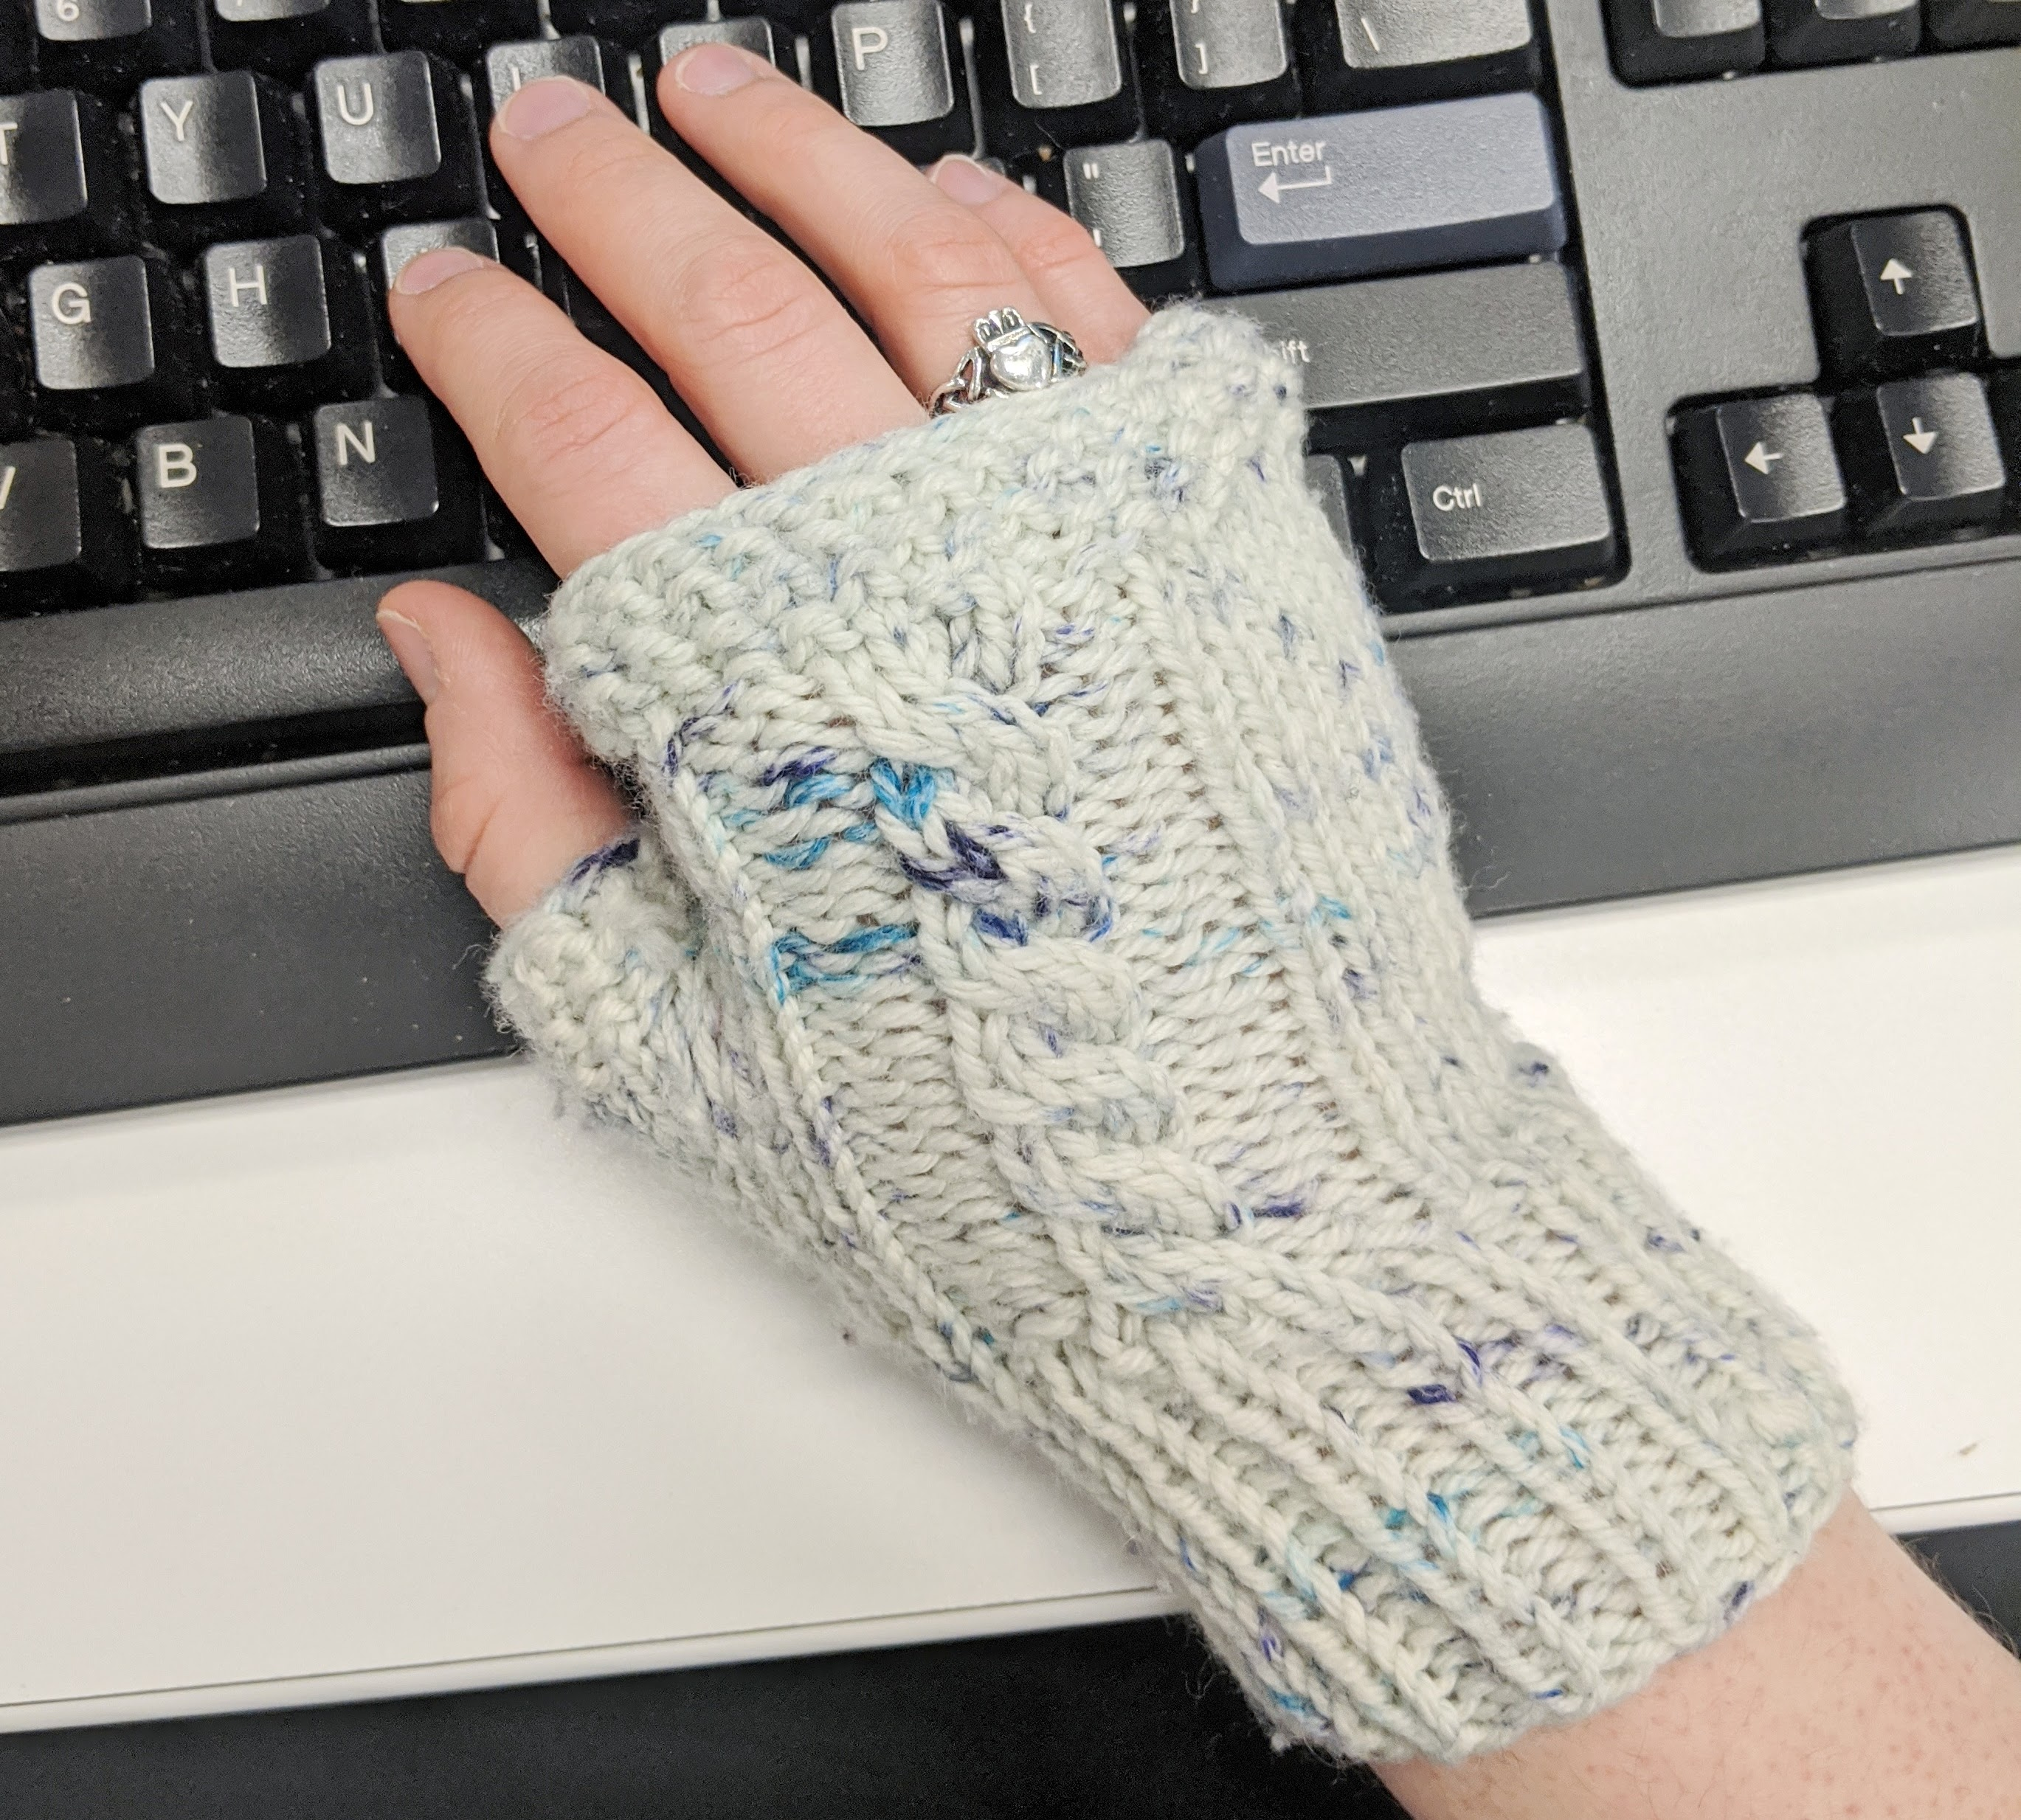 A white woman's hand lays on a computer keyboard wearing a knit fingerless glove